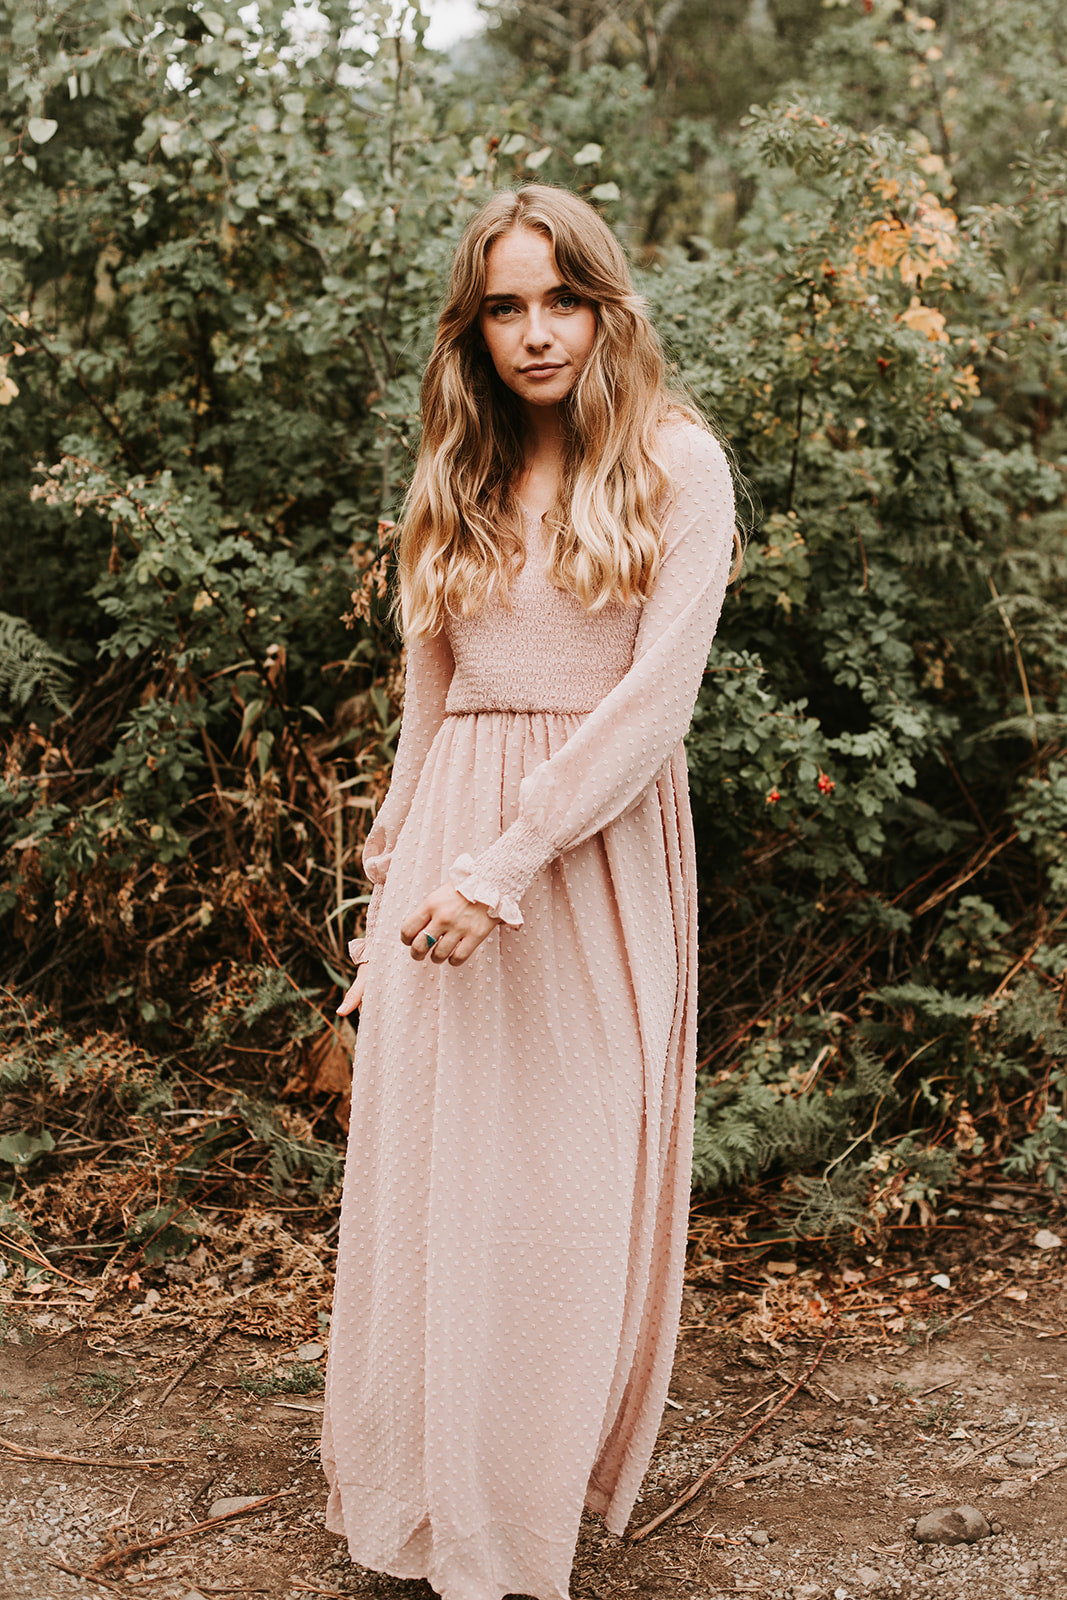 The Marion Smocked Swiss Maxi Dress in Blush